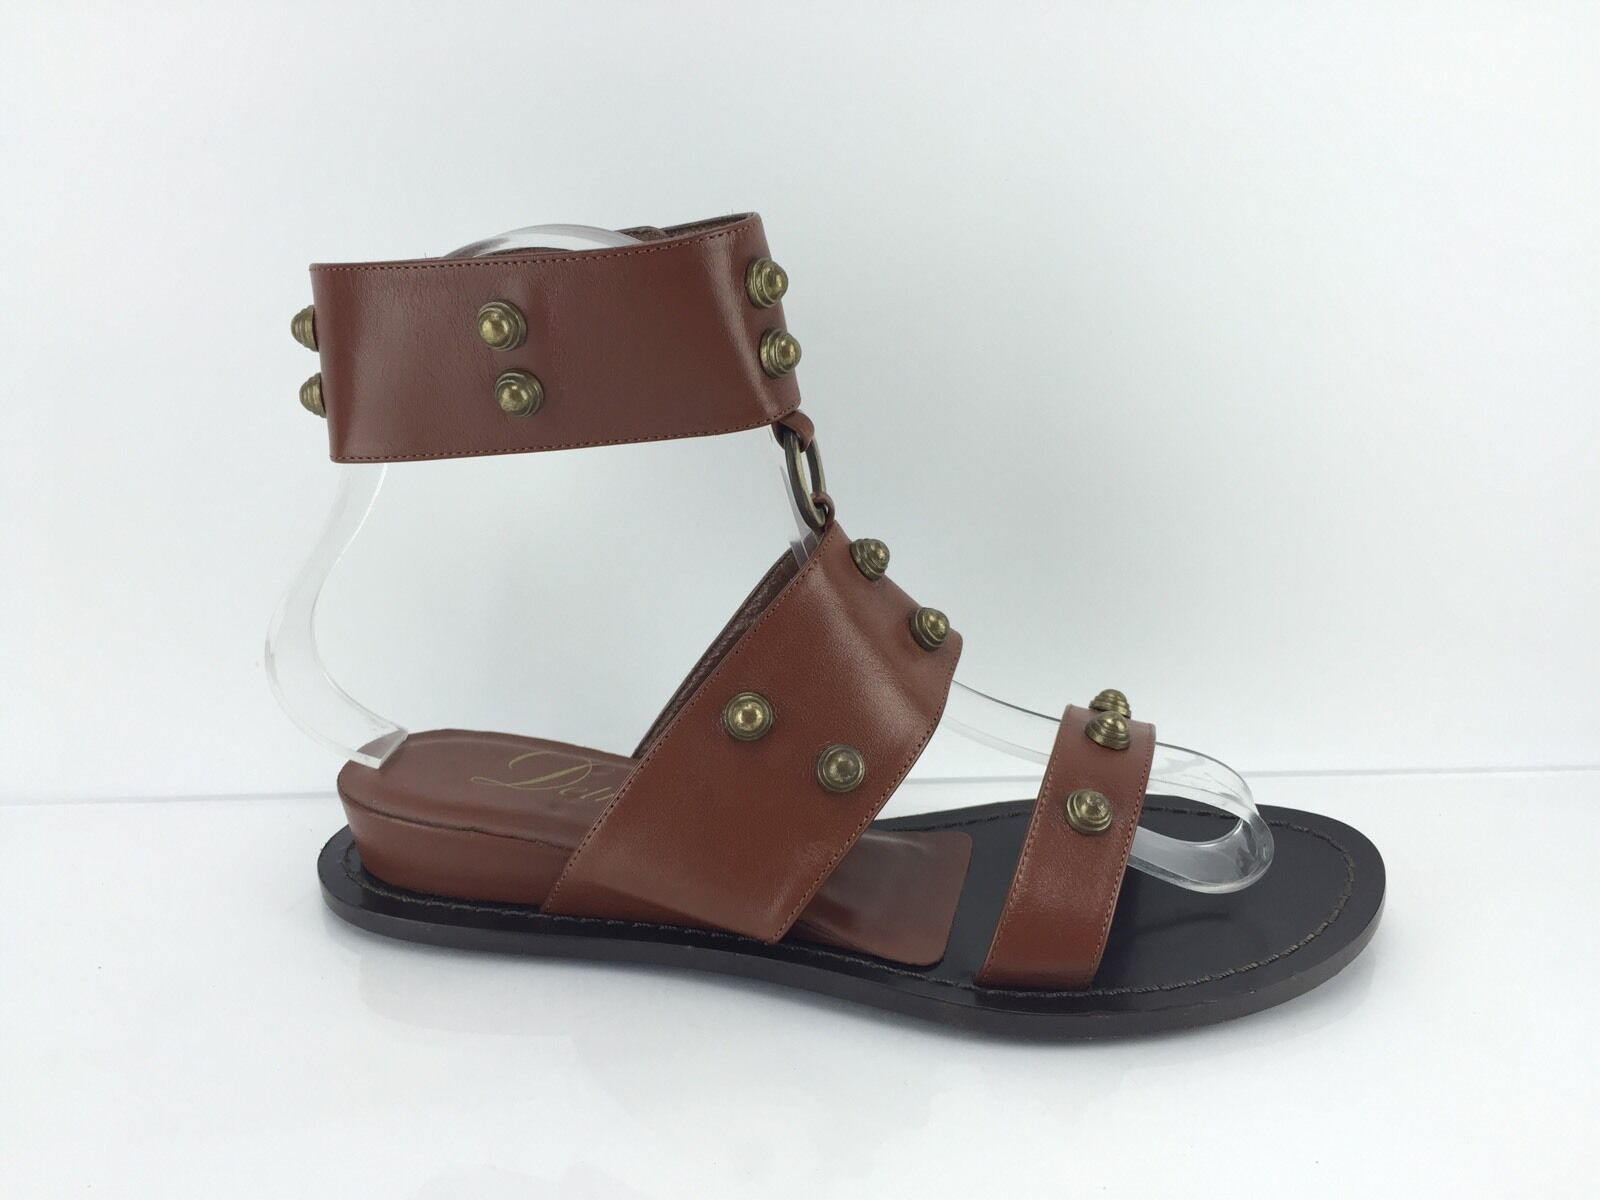 Delman Women's Brown Studded Sandals 5.5 B B B 4d59e8